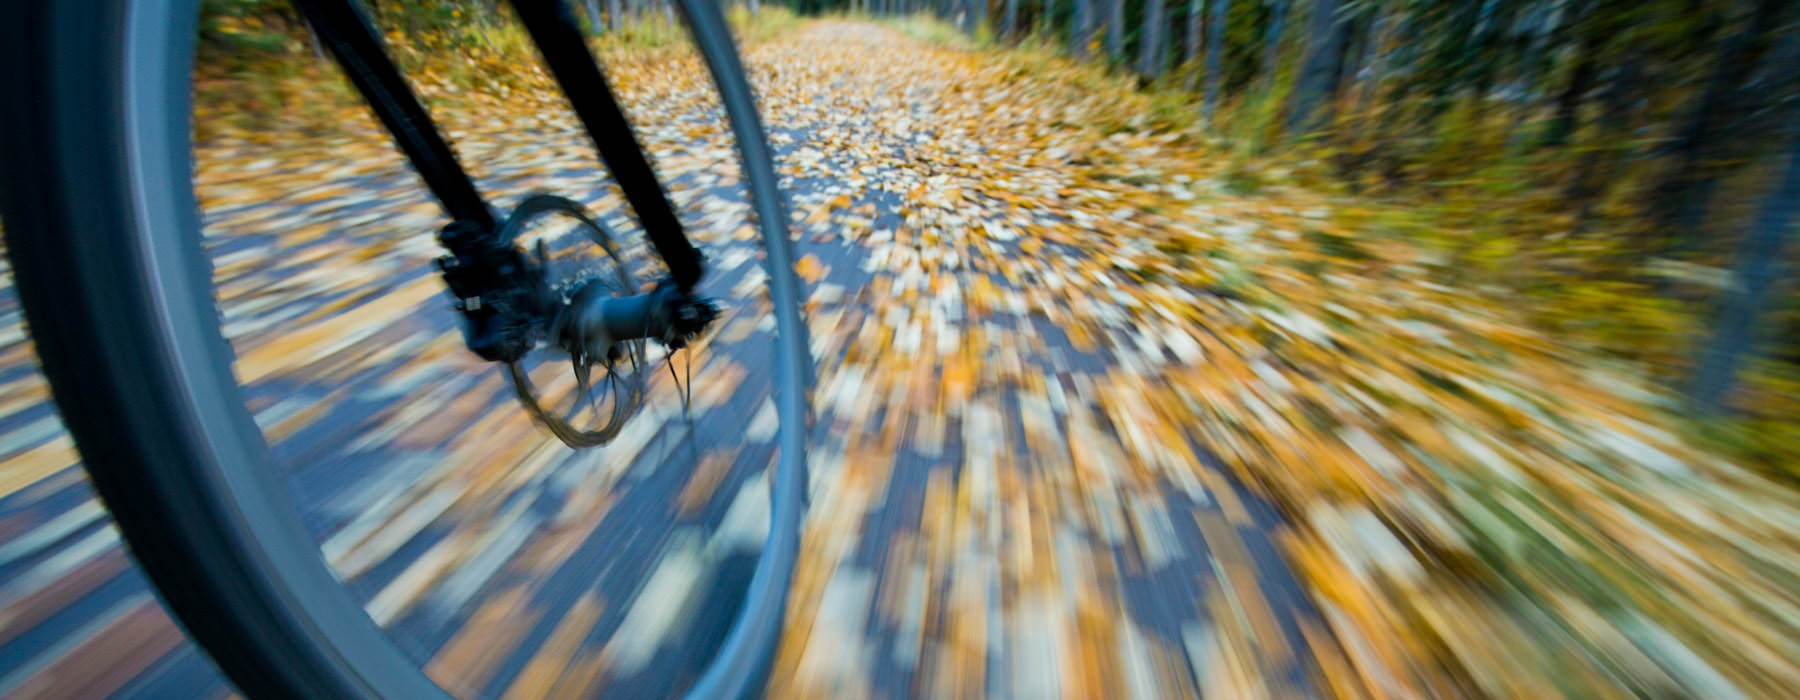 bicycle speeds down paved trail with fallen leaves